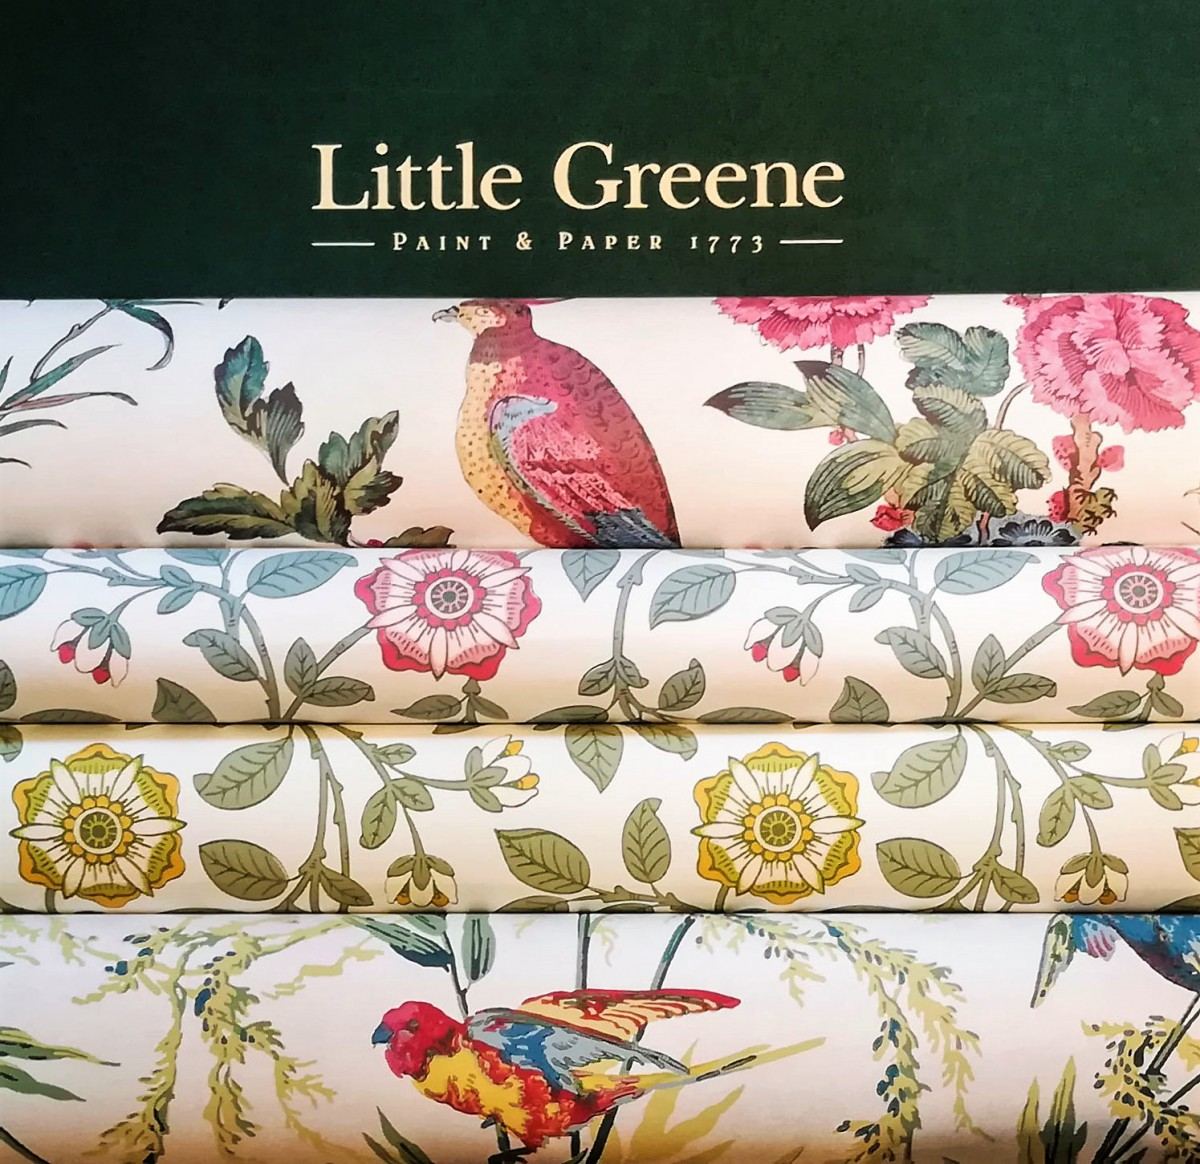 little-greene-image-1